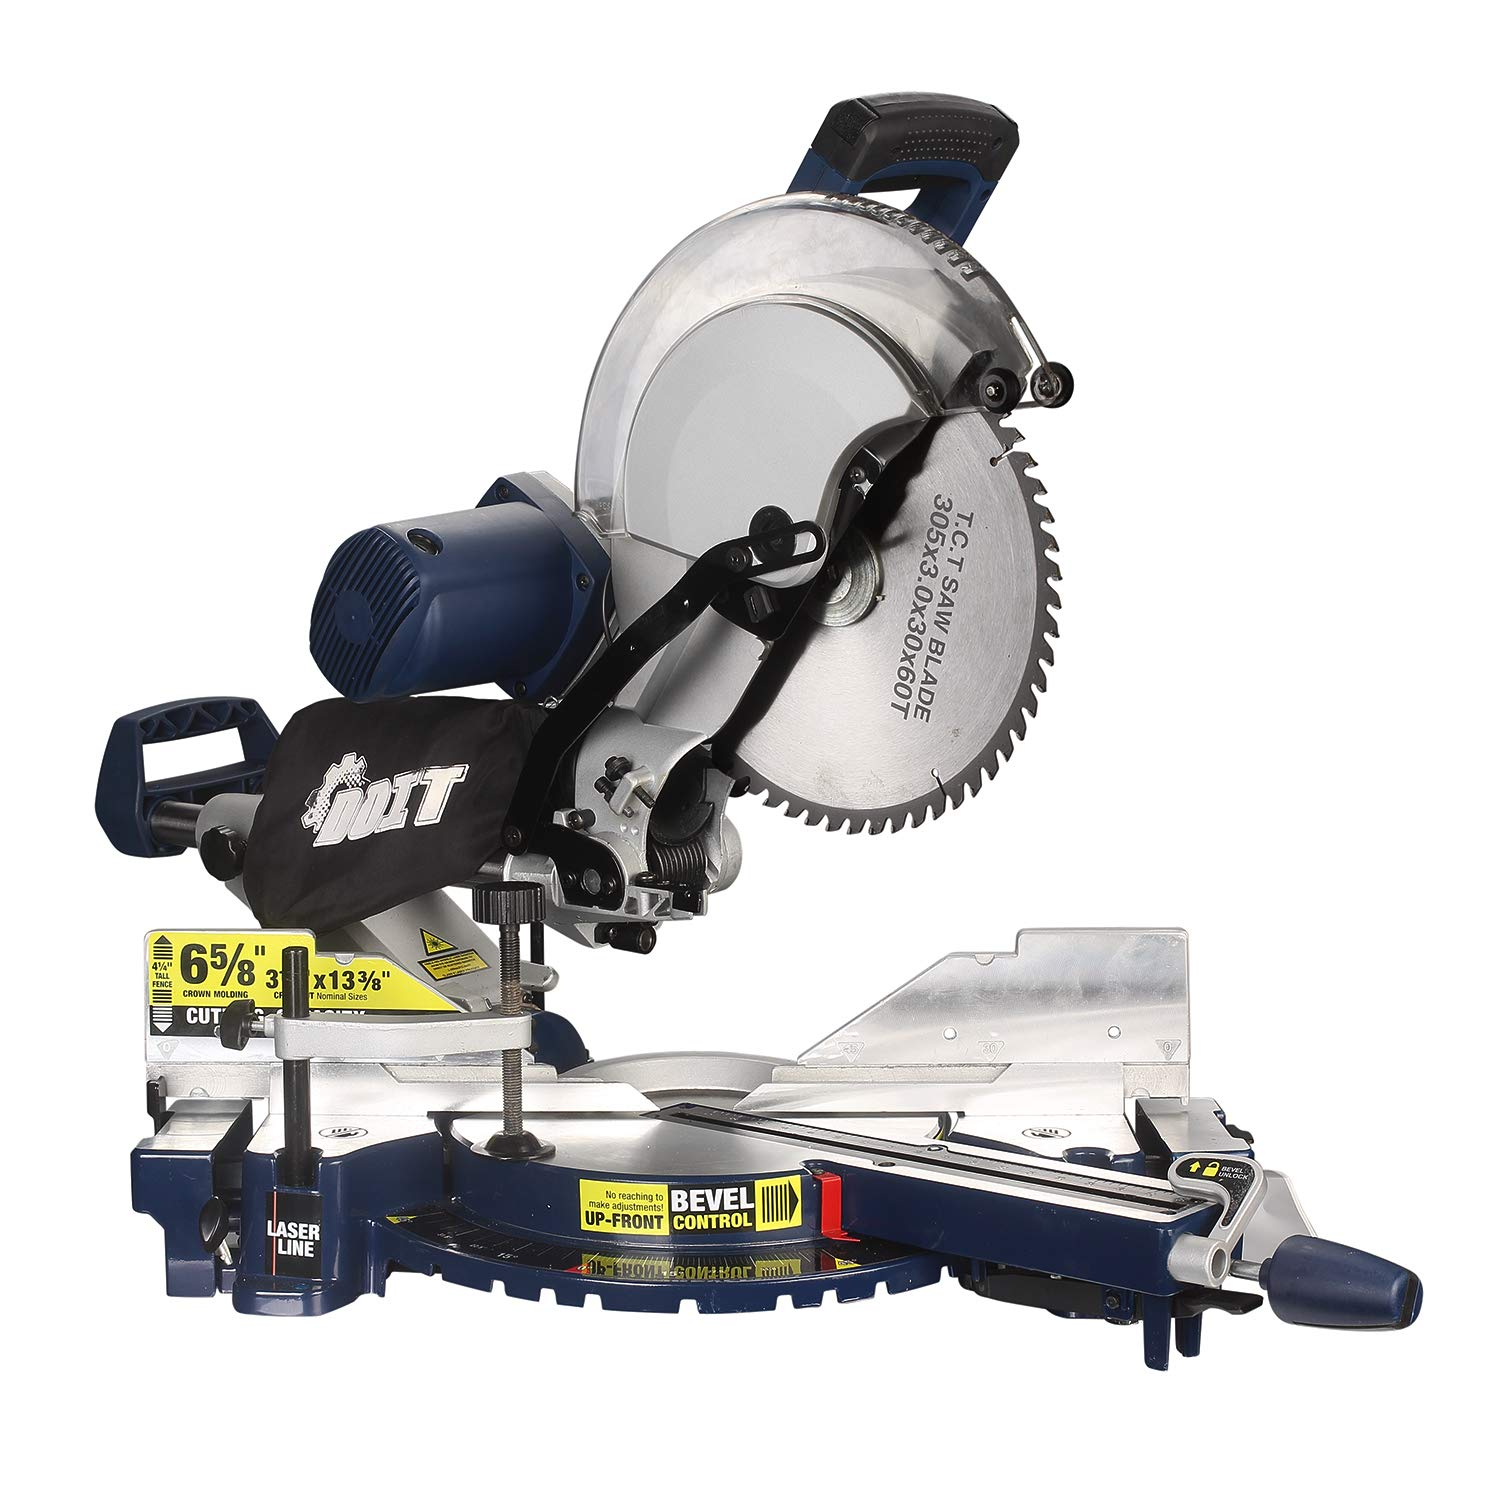 DOIT Dual Bevel Compound Miter Saw